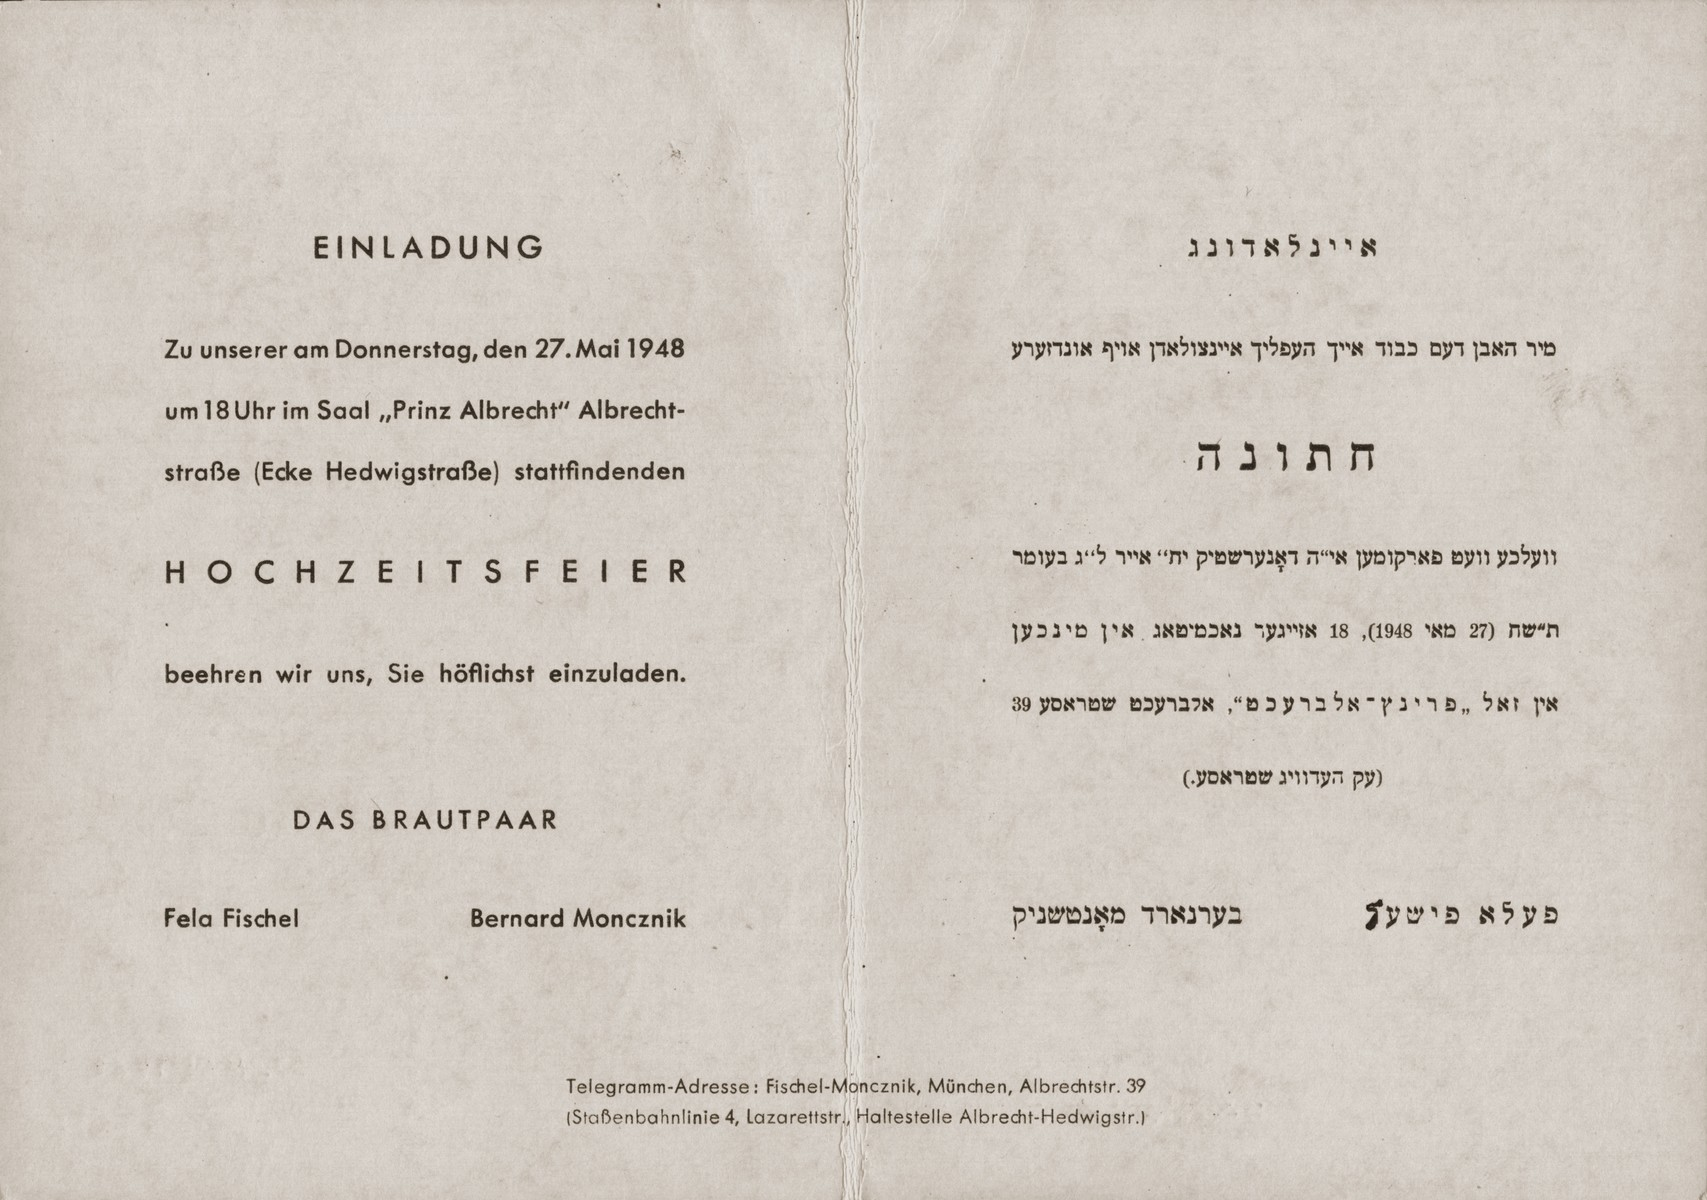 The wedding invitation of the Jewish DP couple, Fajgl Fiszel and Berl Moncznik.    The ceremony took place on Lag b'Omer, May 27, 1948, in the Prinz Albrecht Hall in Munich.  The invitation is printed in Yiddish and German.